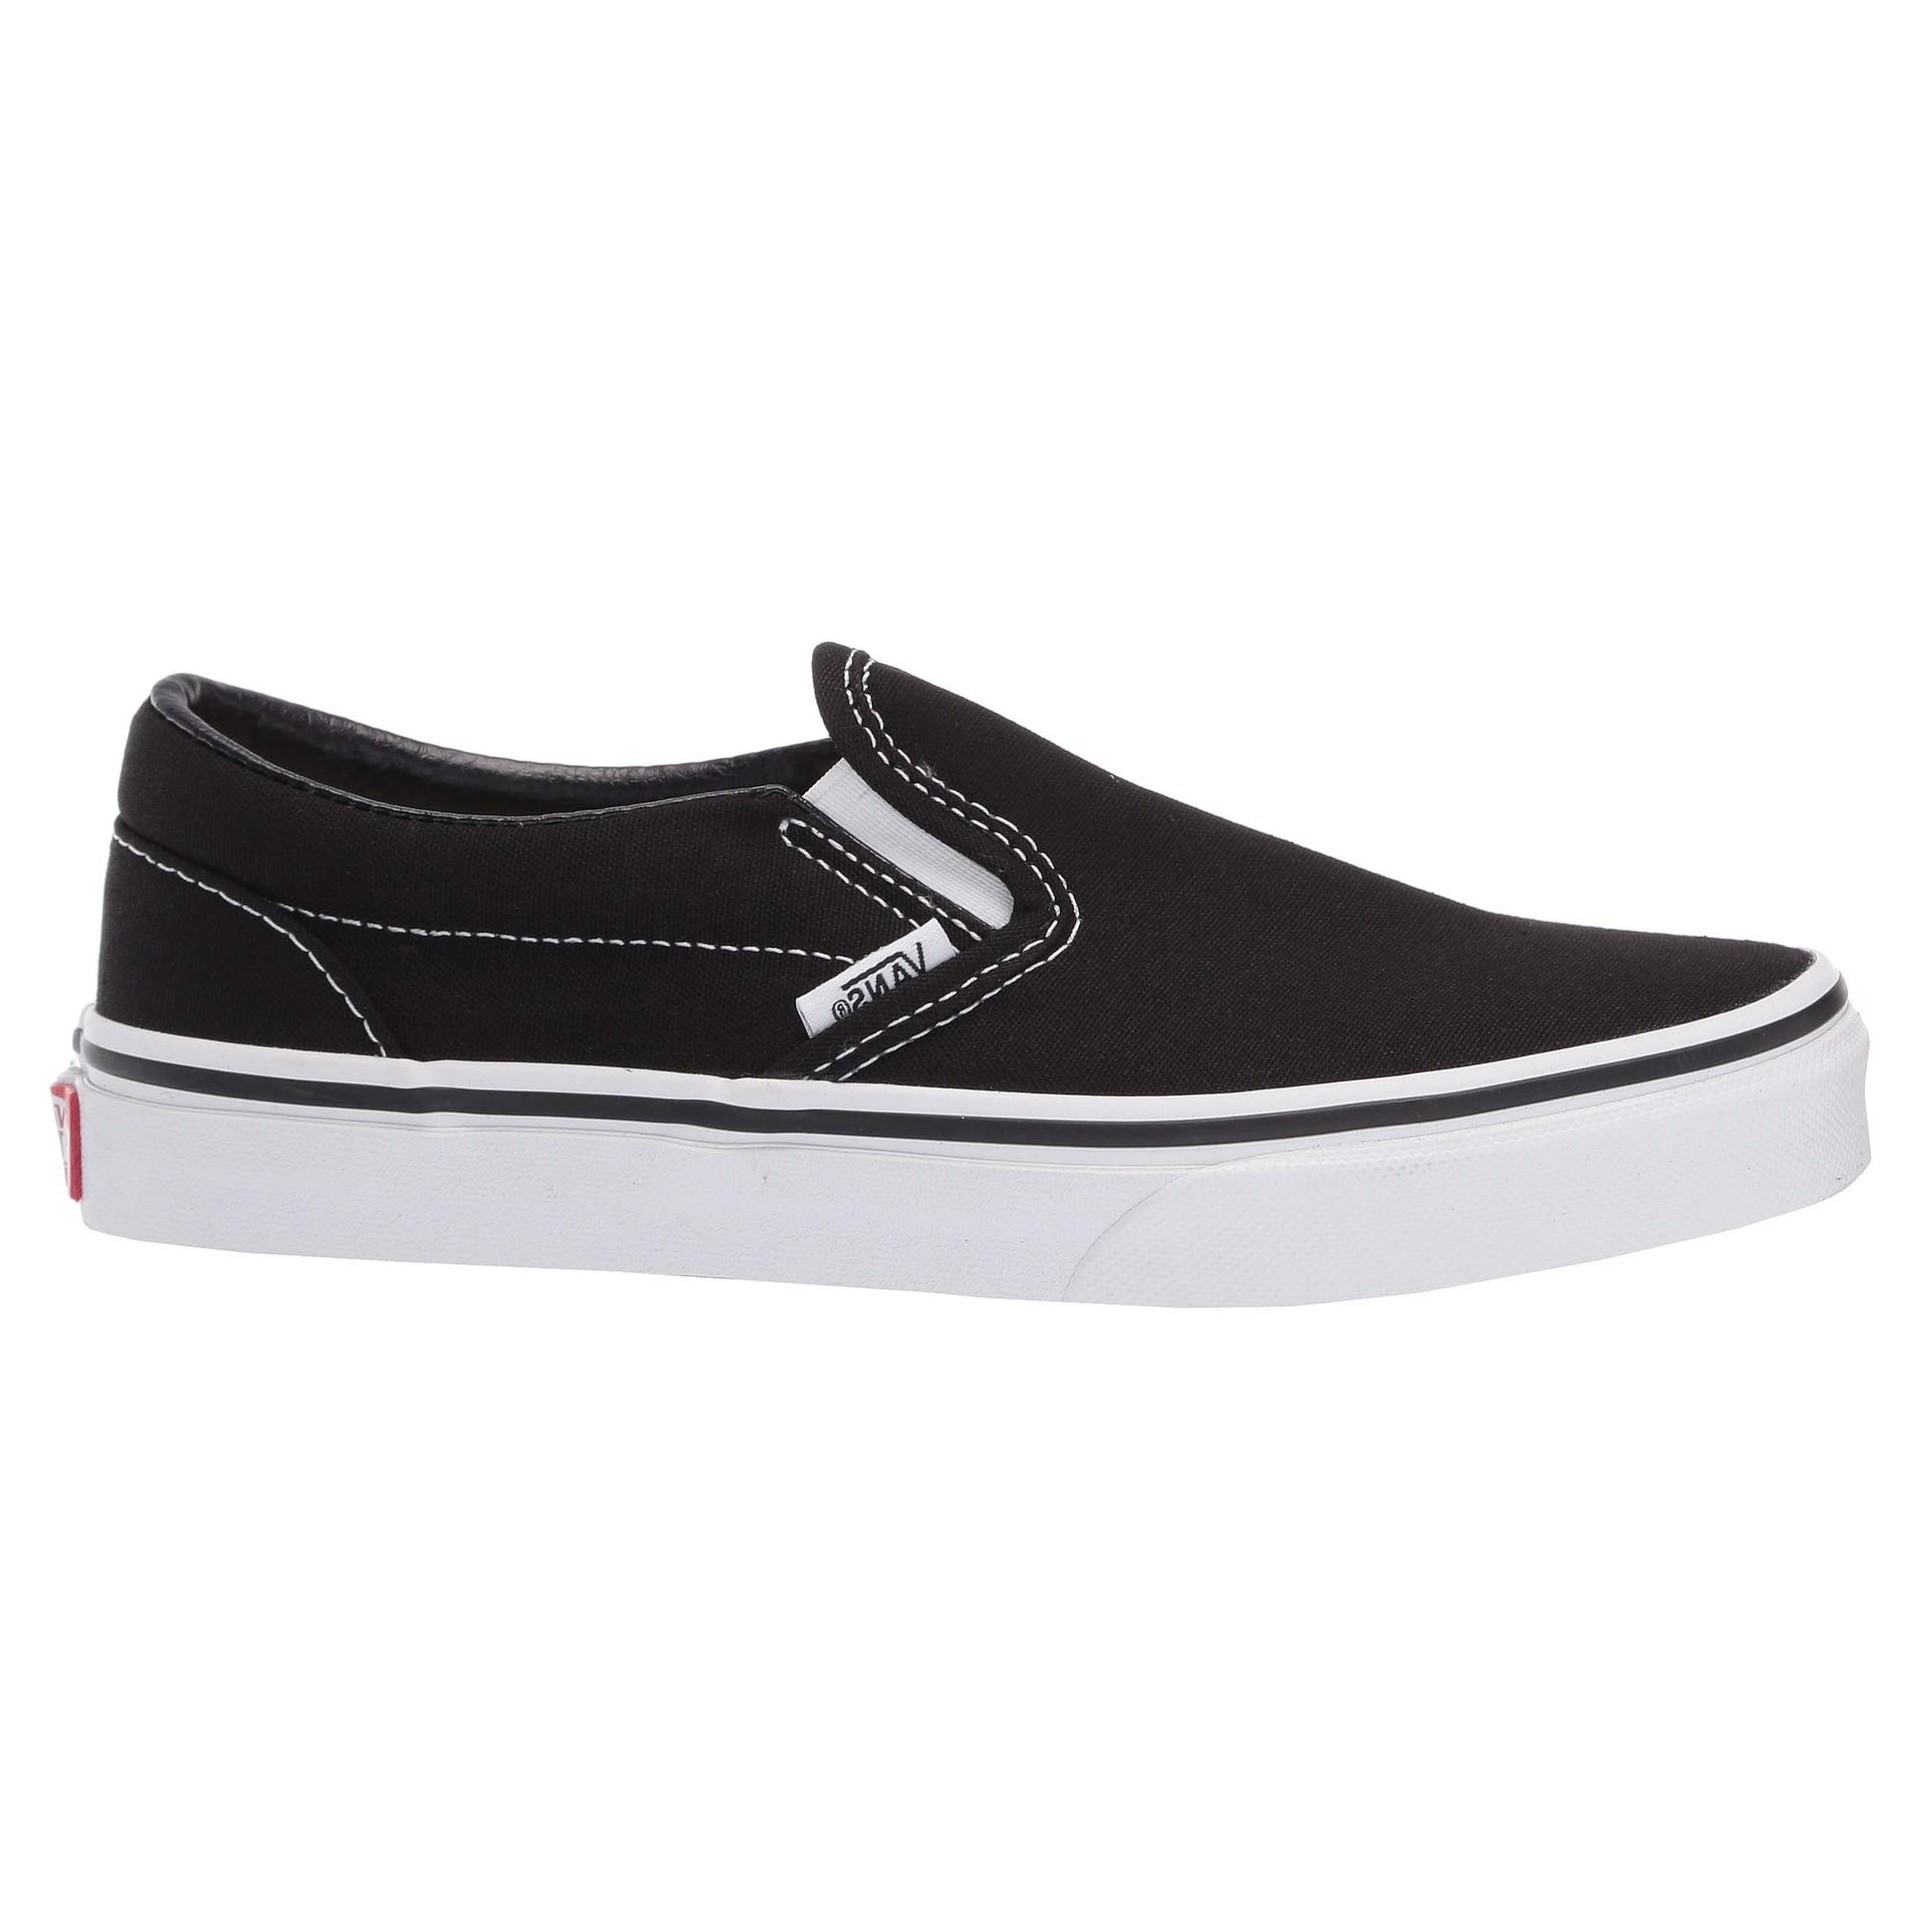 Kids Classic Slip-On (Black/True White)